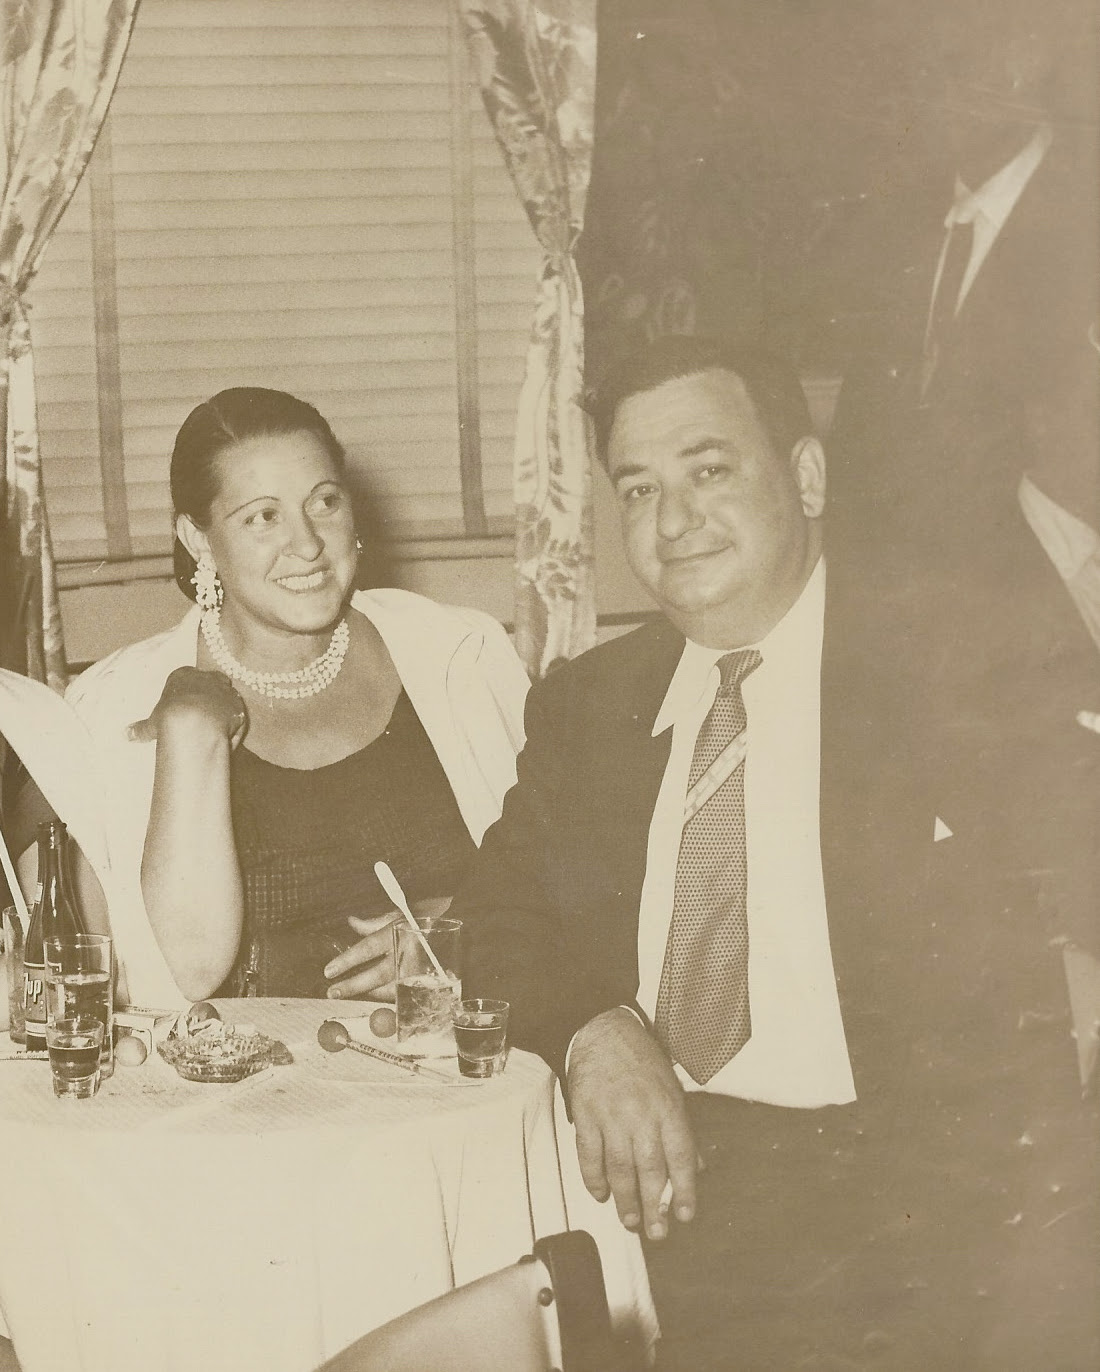 The author's grandfather Russ Shorto and his wife Mary, circa 1955, in Atlantic City.